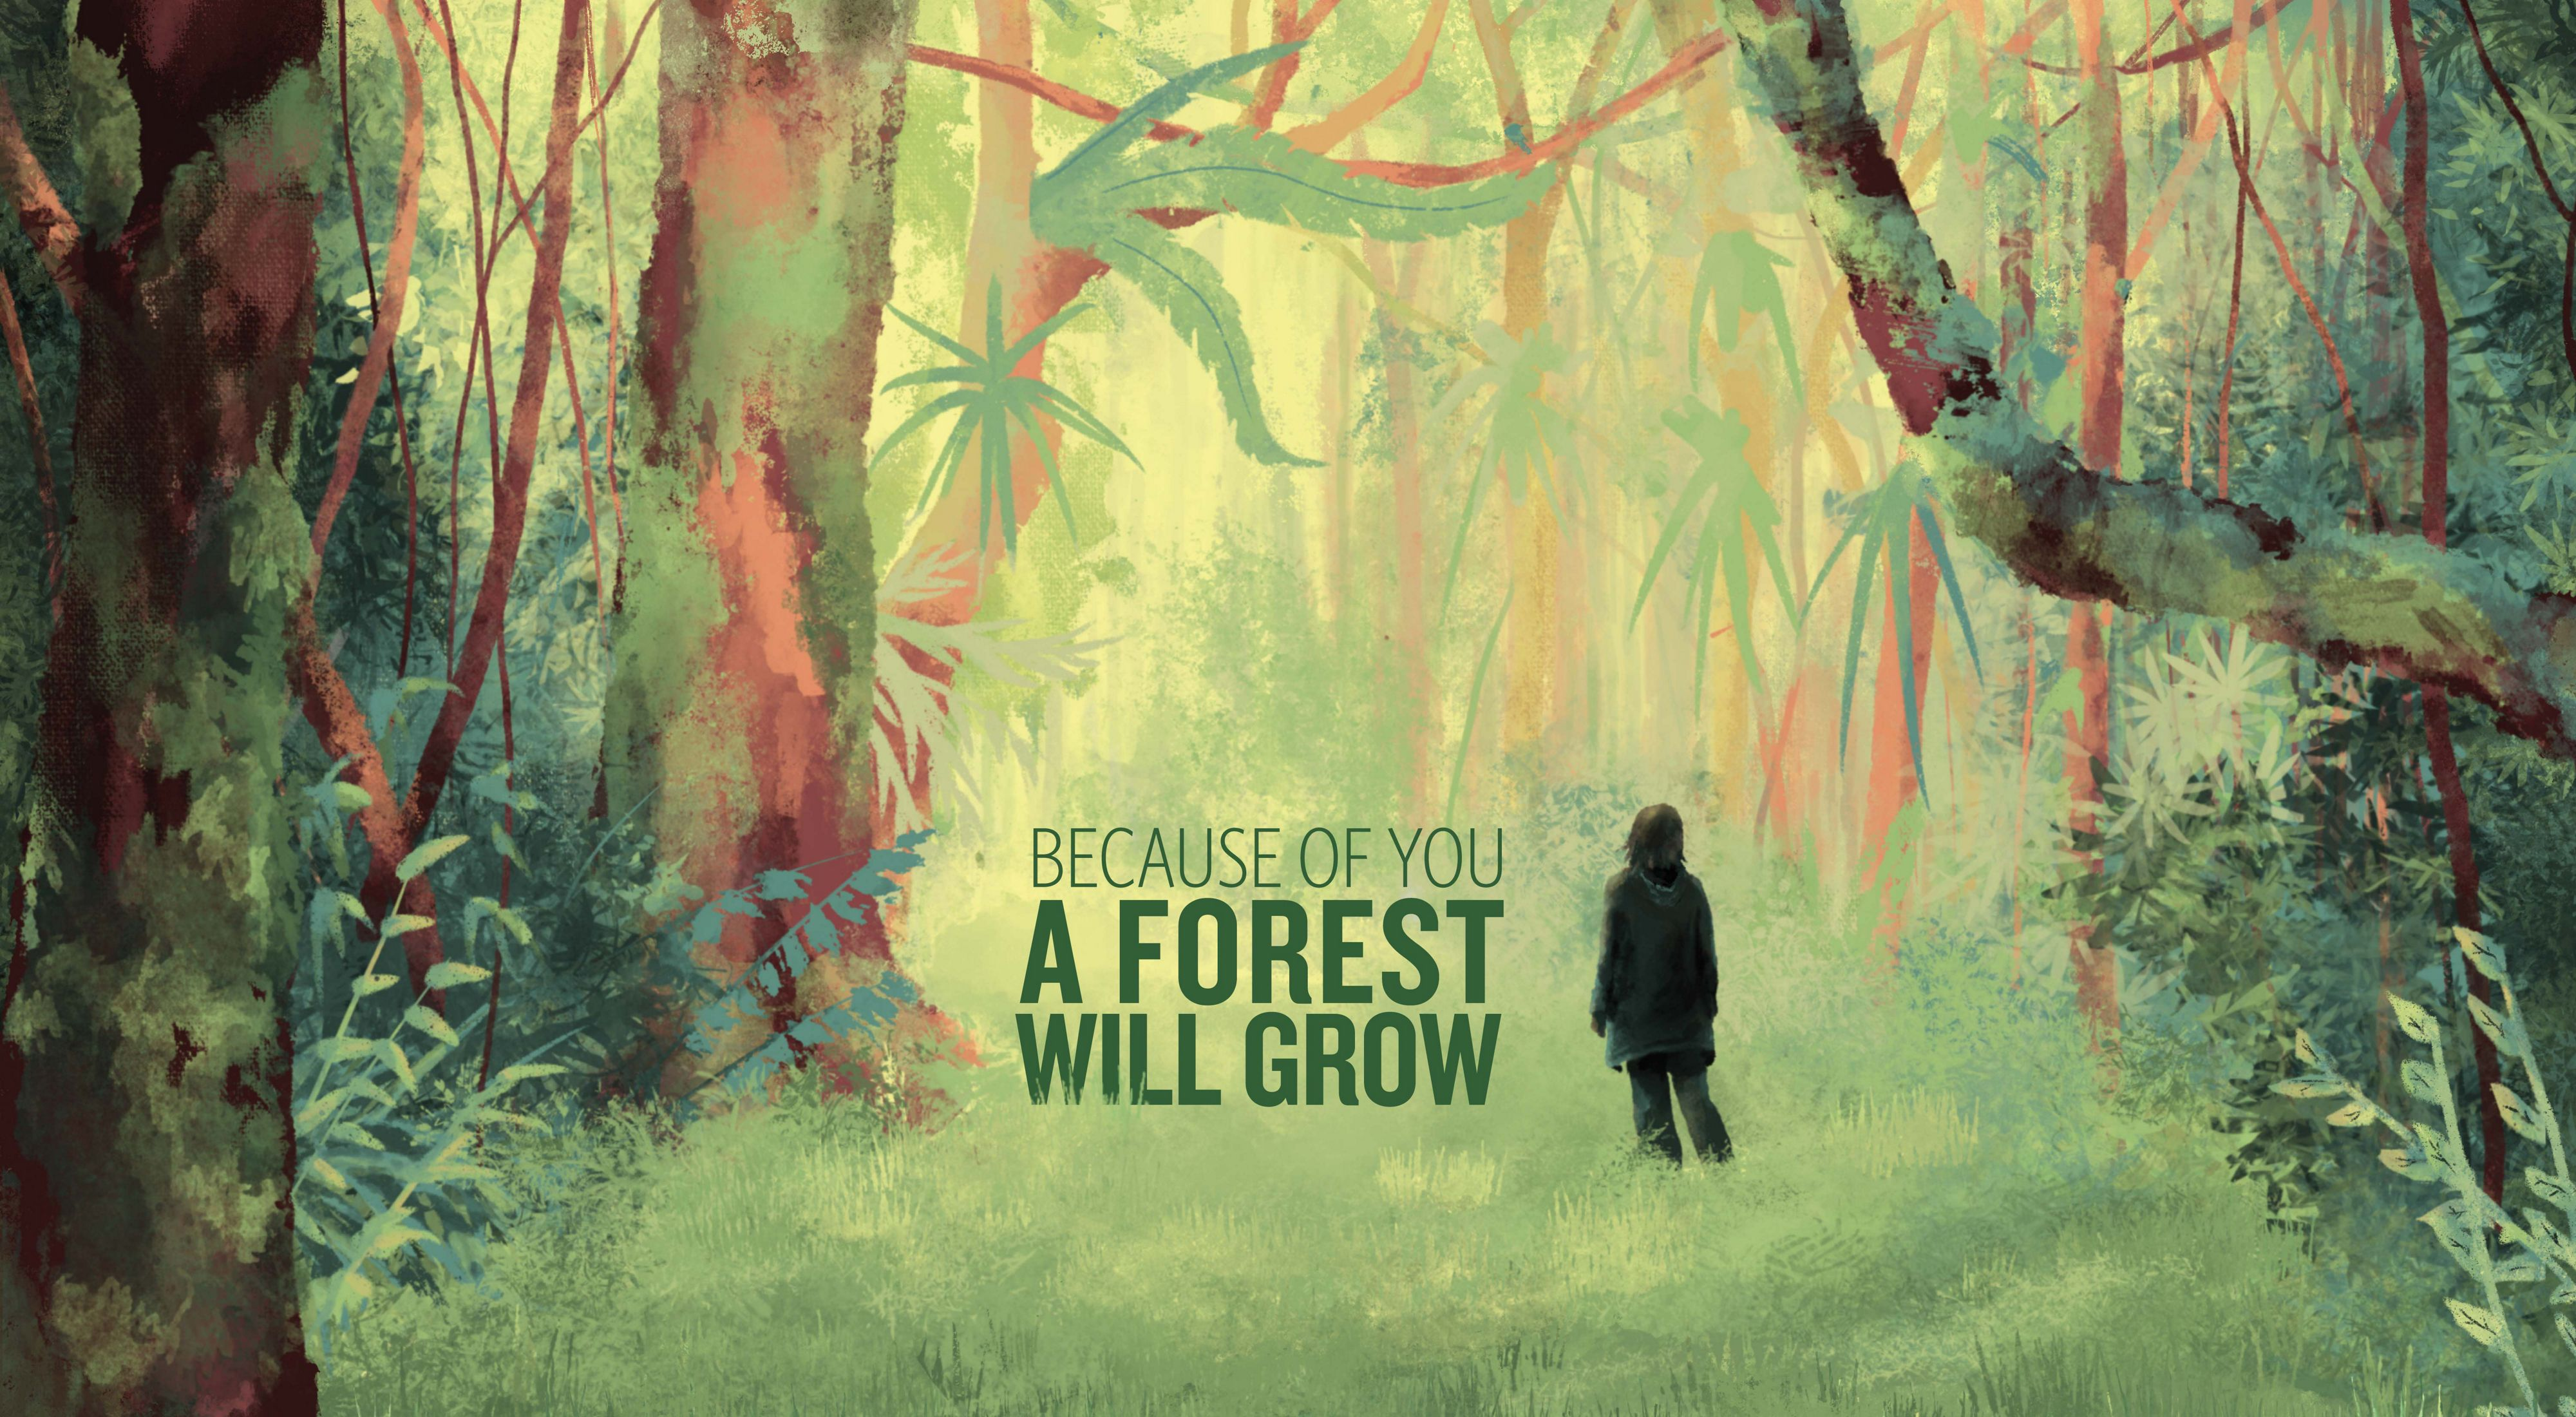 """Animation of a silhouette looking into a green forest with the text """"because of you a forest will grow"""" in the middle."""